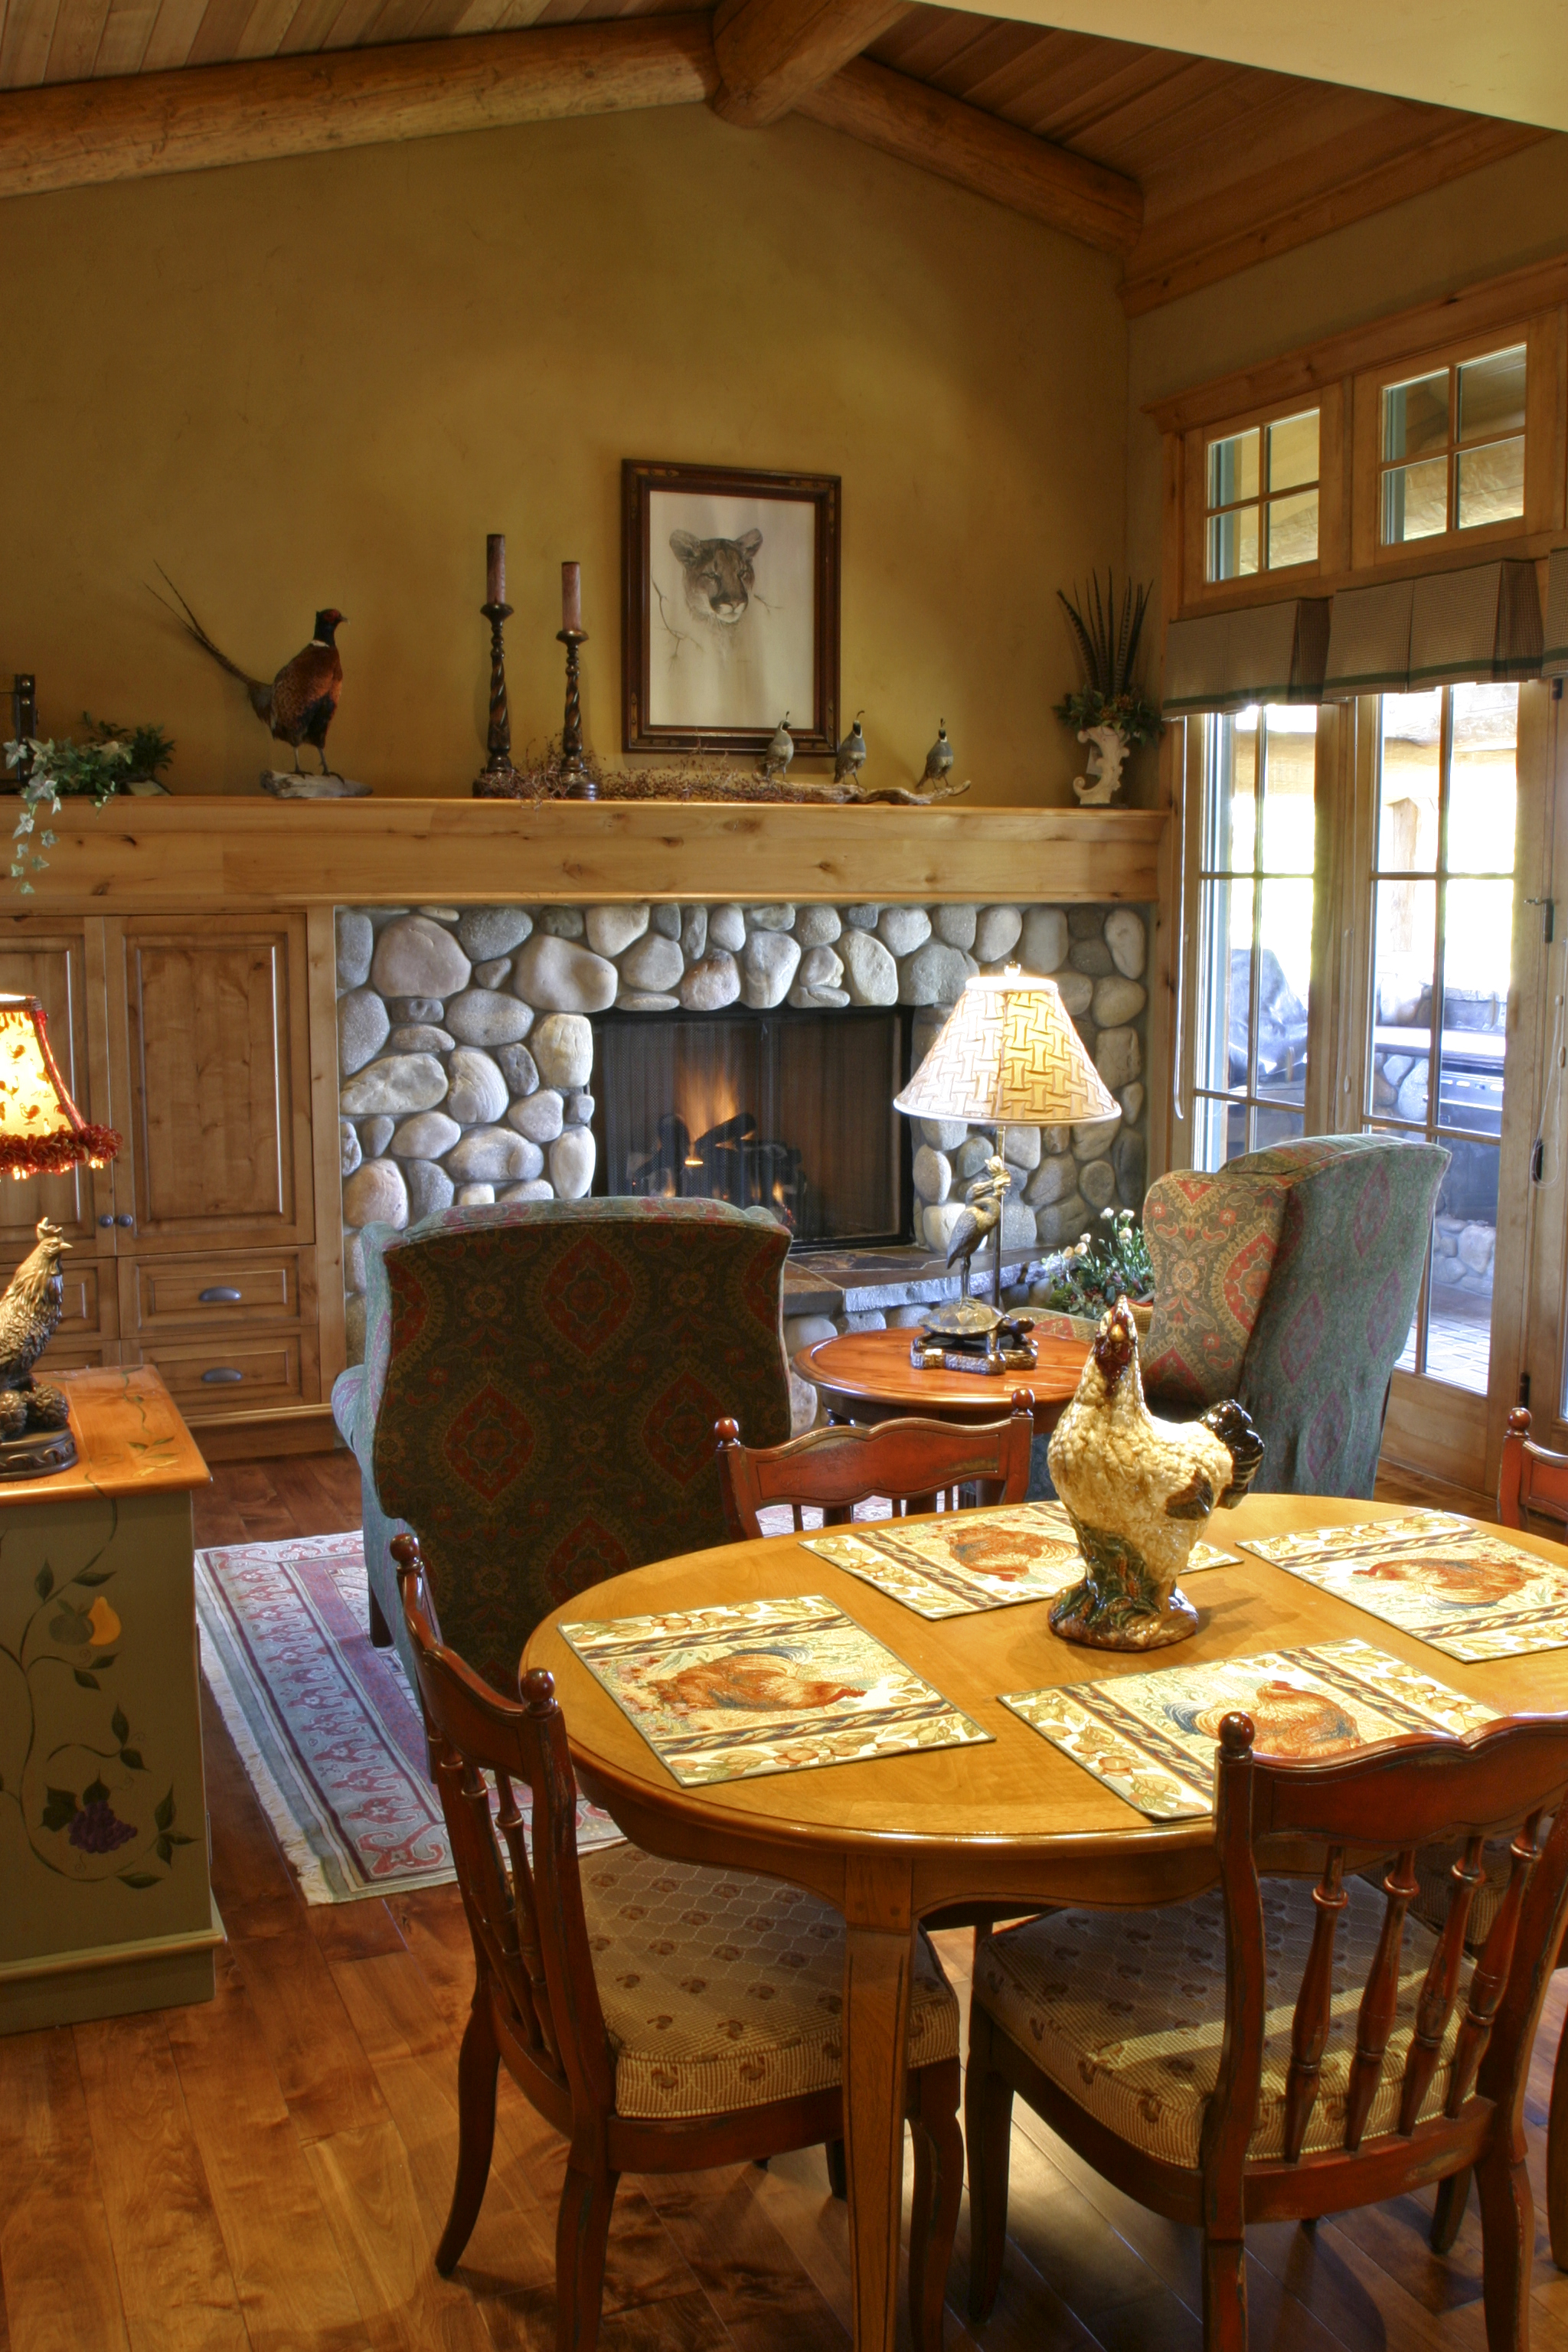 breakfast_table_fireplace.jpg